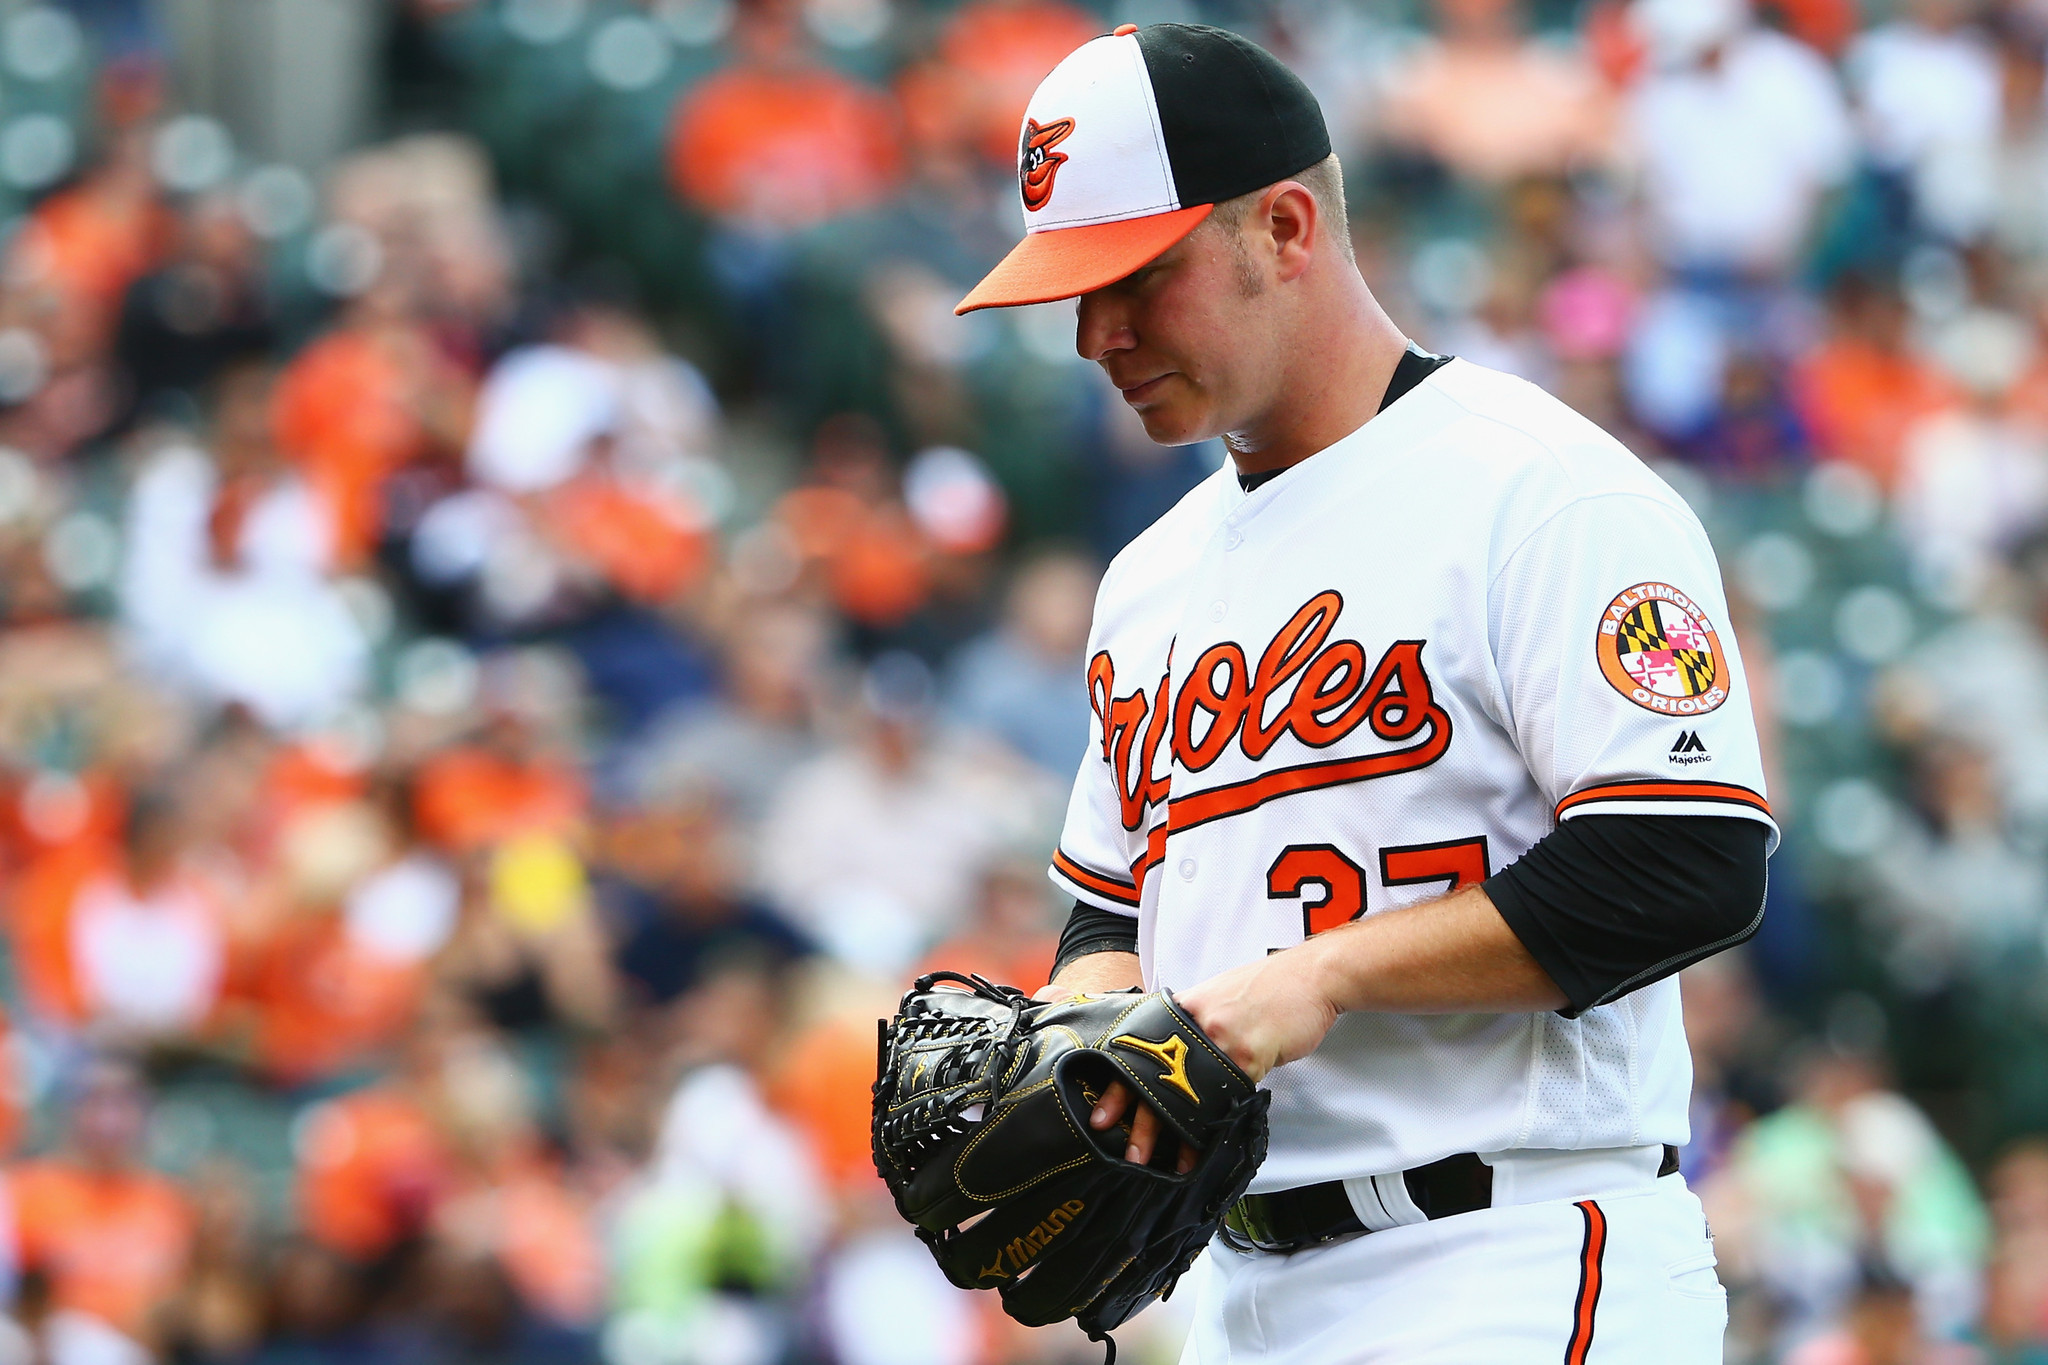 Bal-orioles-notes-dylan-bundy-on-his-recent-struggles-plus-injury-updates-on-gallardo-hardy-harvey-20160525